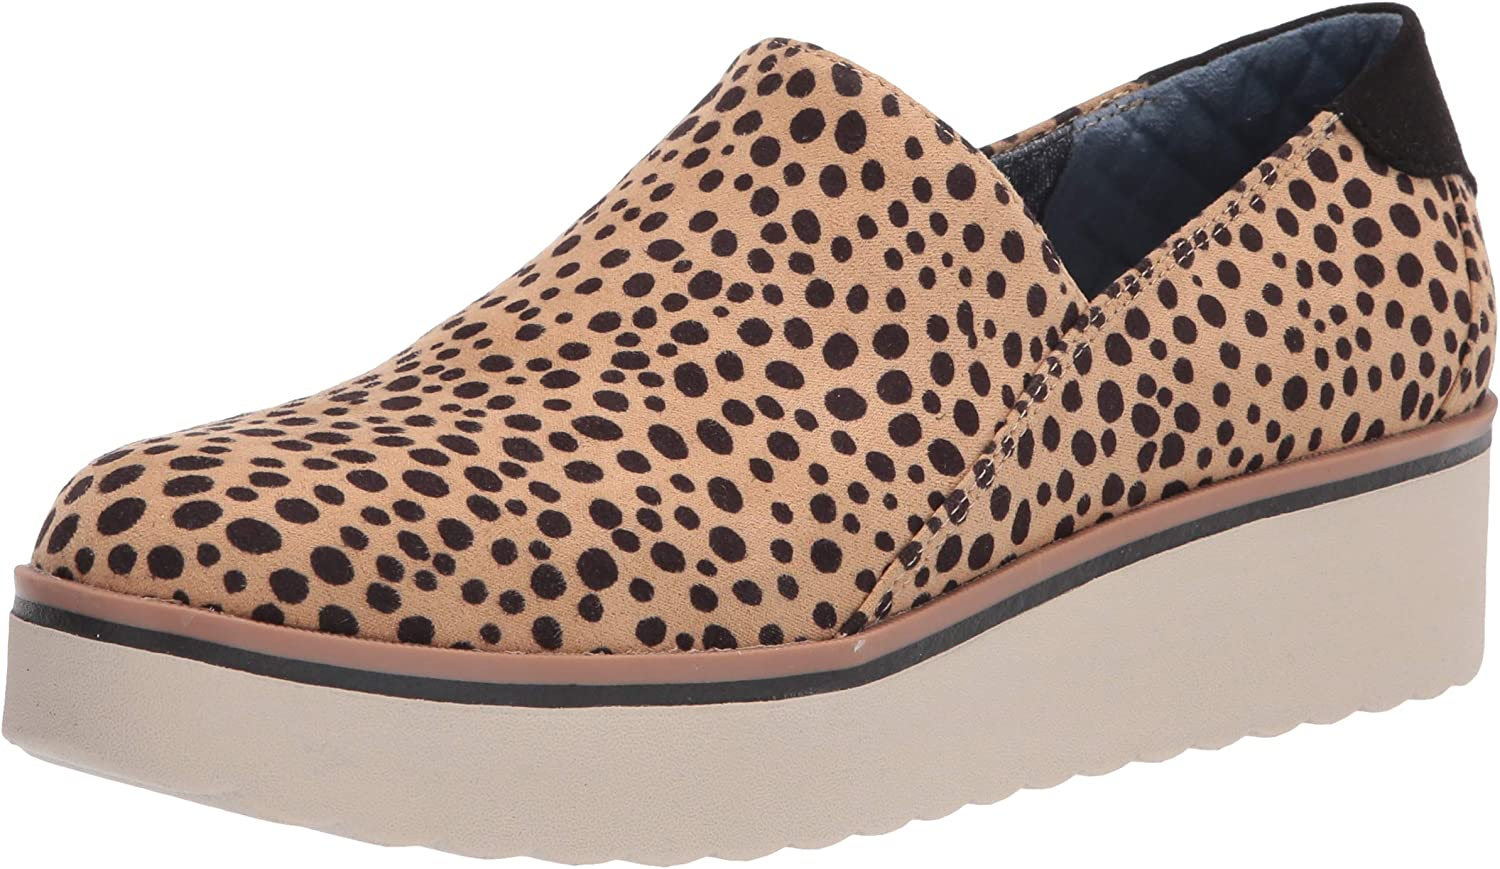 Dr. Scholl's Shoes Trust womens Out Look Large-scale sale